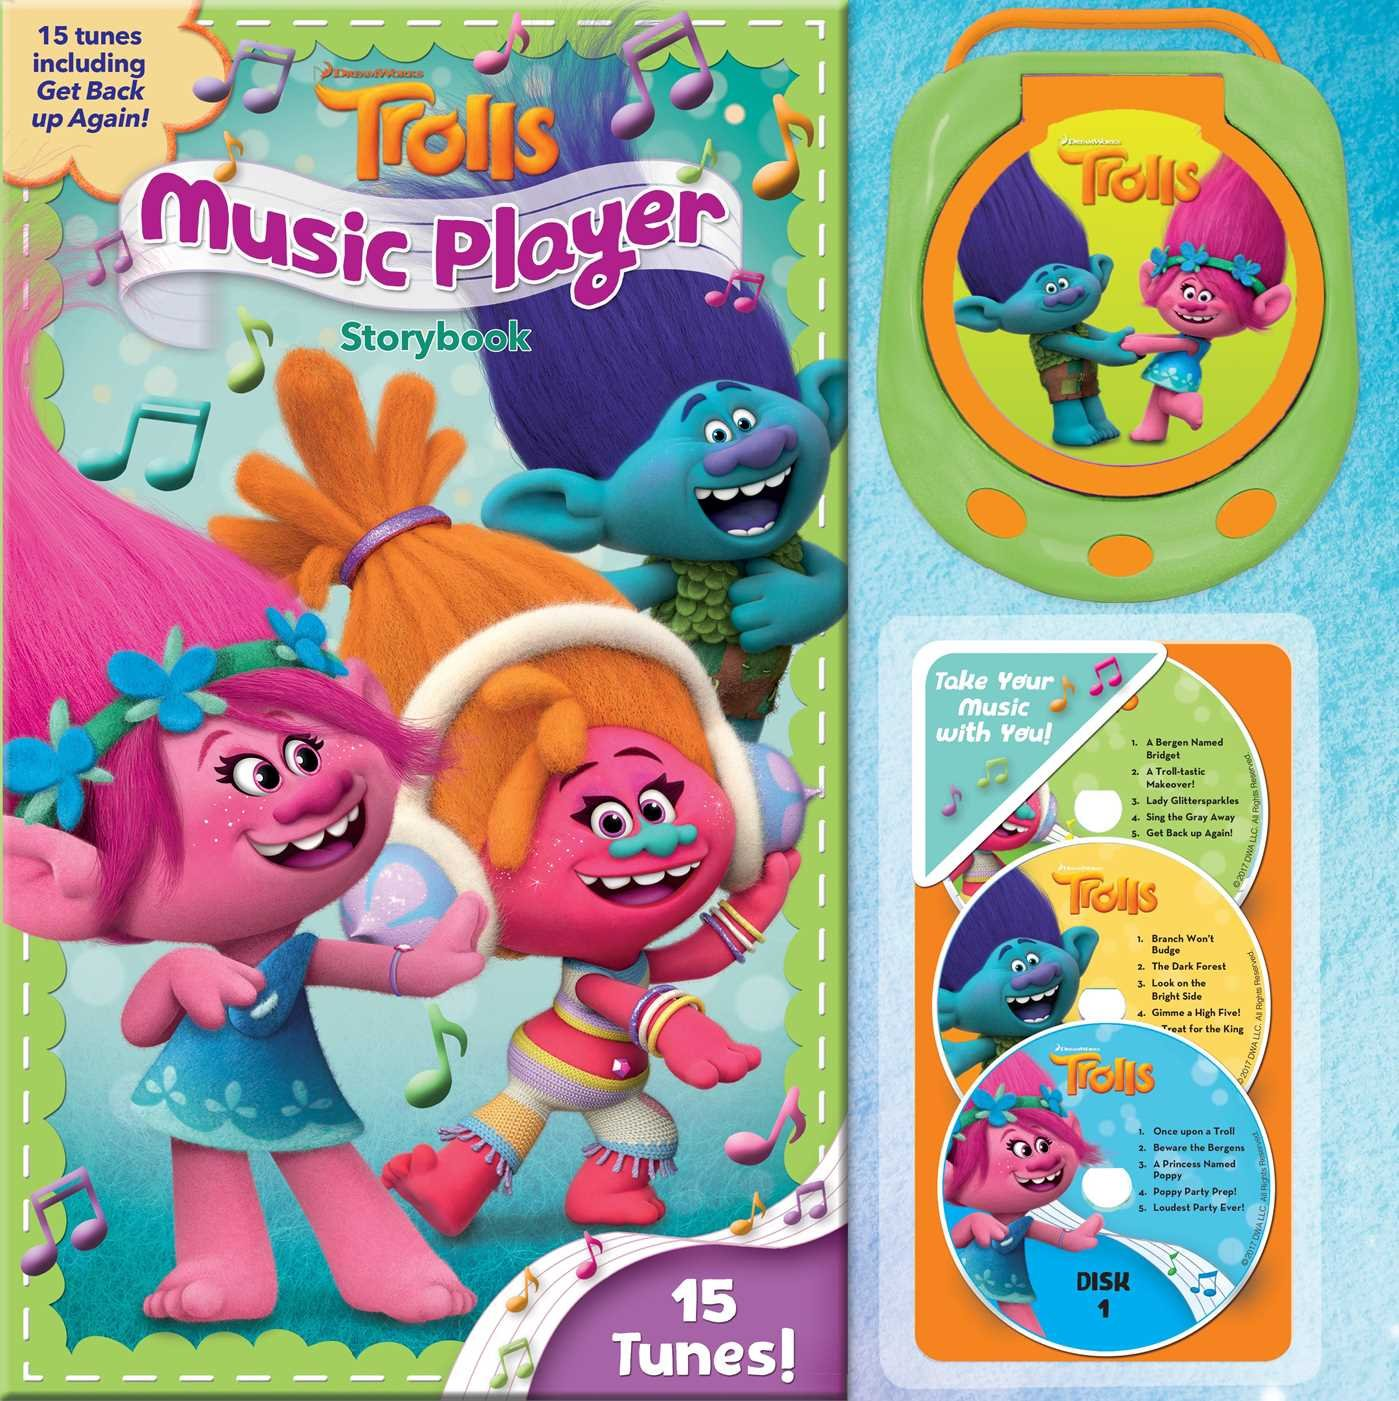 88b6a3d02c4f DreamWorks Trolls Music Player Storybook Hardcover – October 3